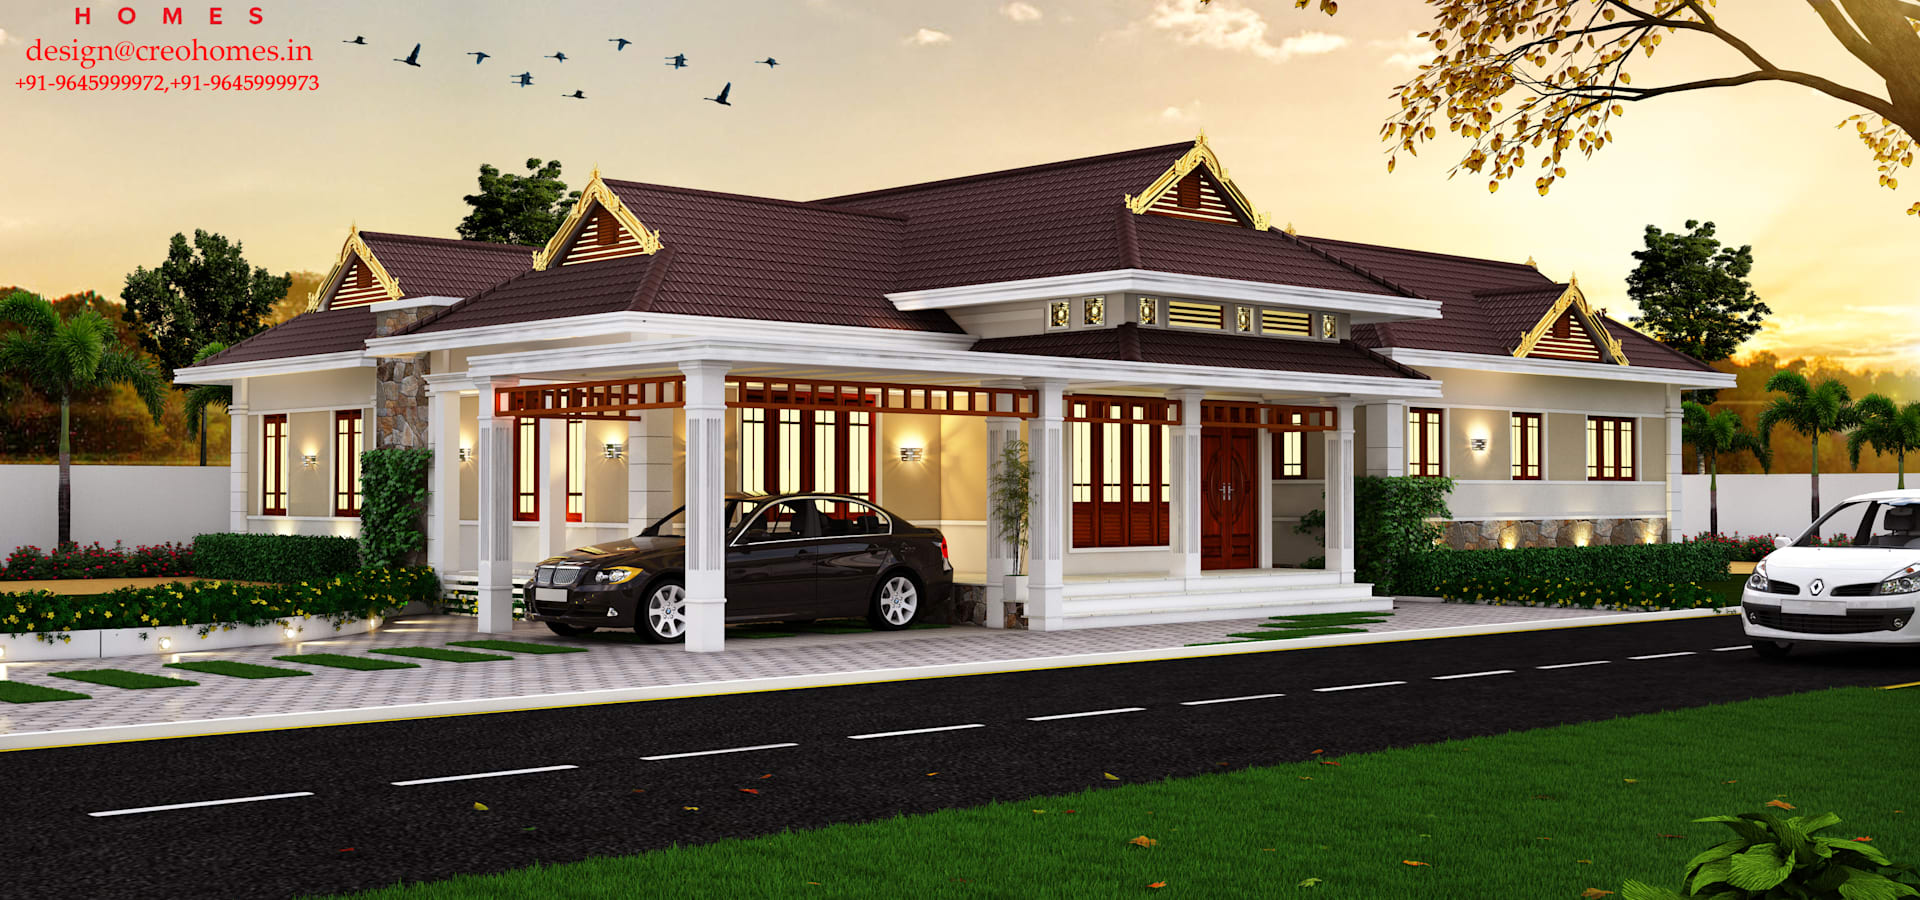 Creo Homes Architects In Cochin Homify